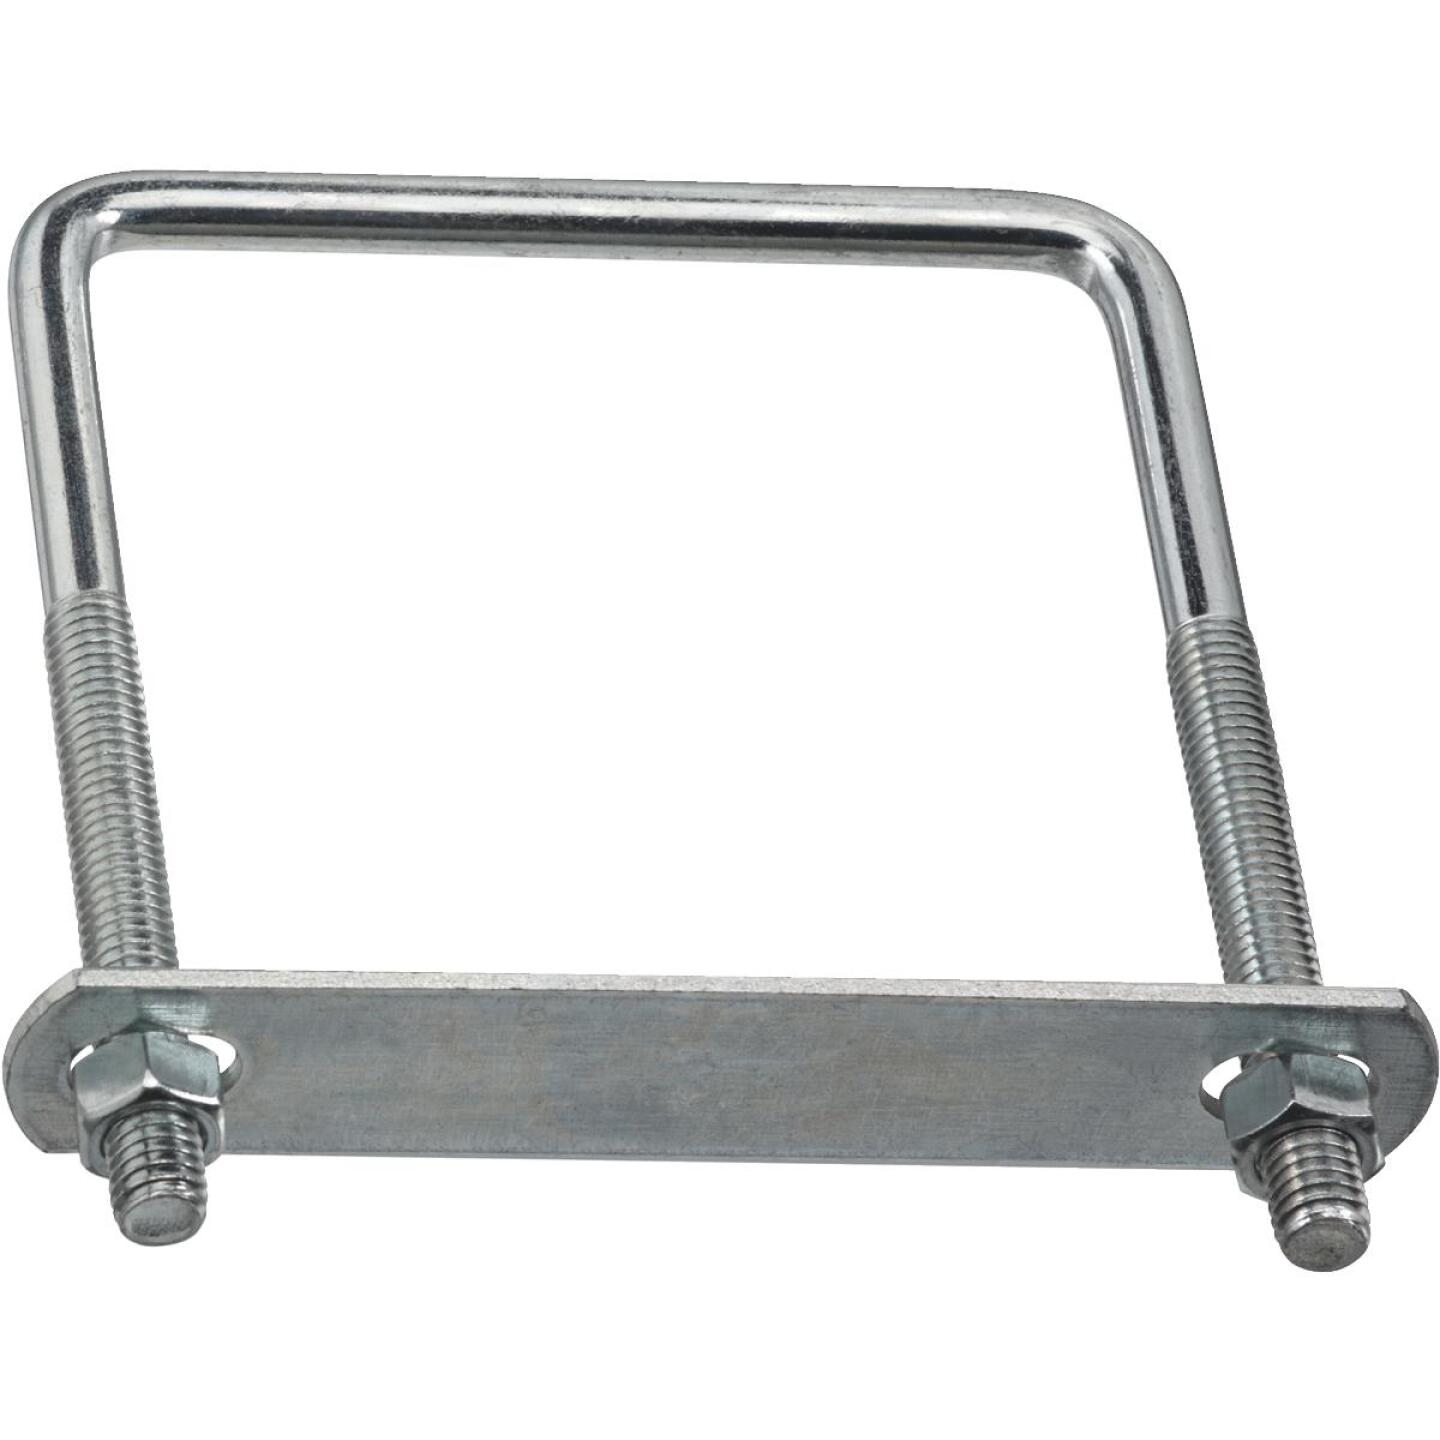 National 3/8 In. x 4 In. x 5 In. Zinc Square U Bolt Image 1